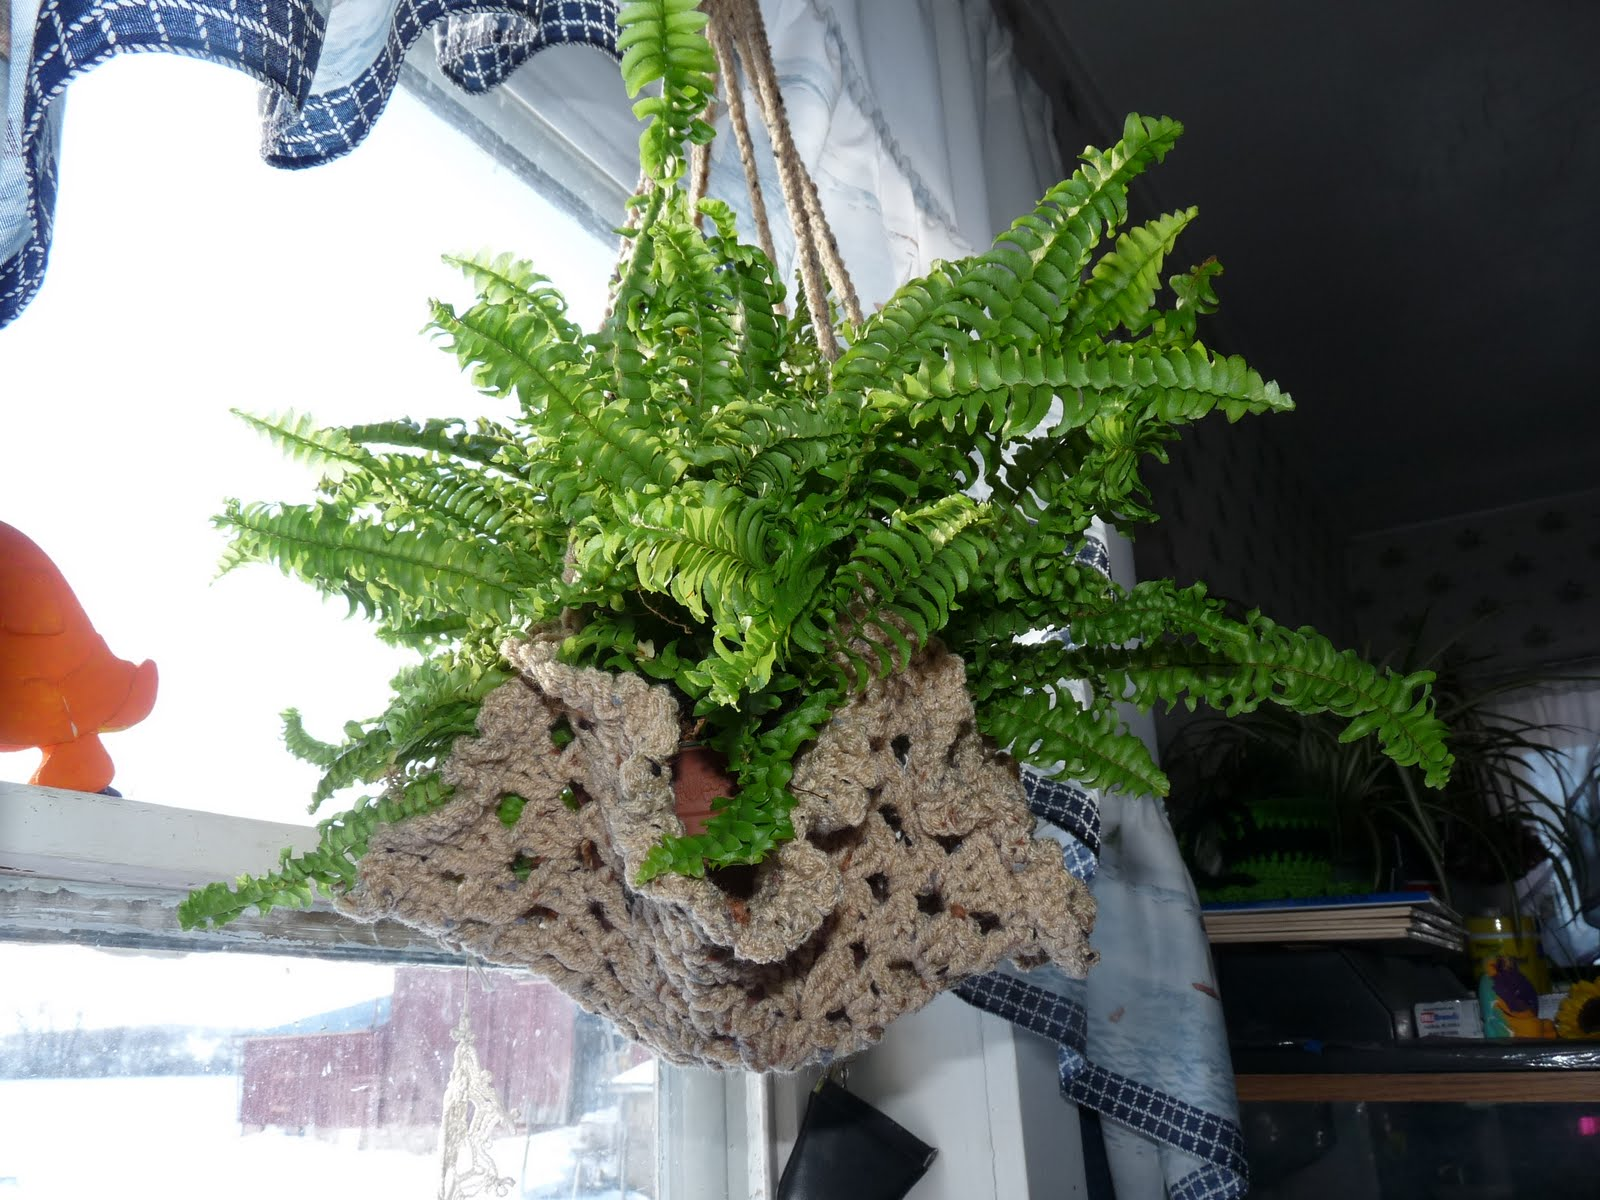 FREE CROCHET PATTERNS PLANT HANGERS - Crochet and Knitting Patterns